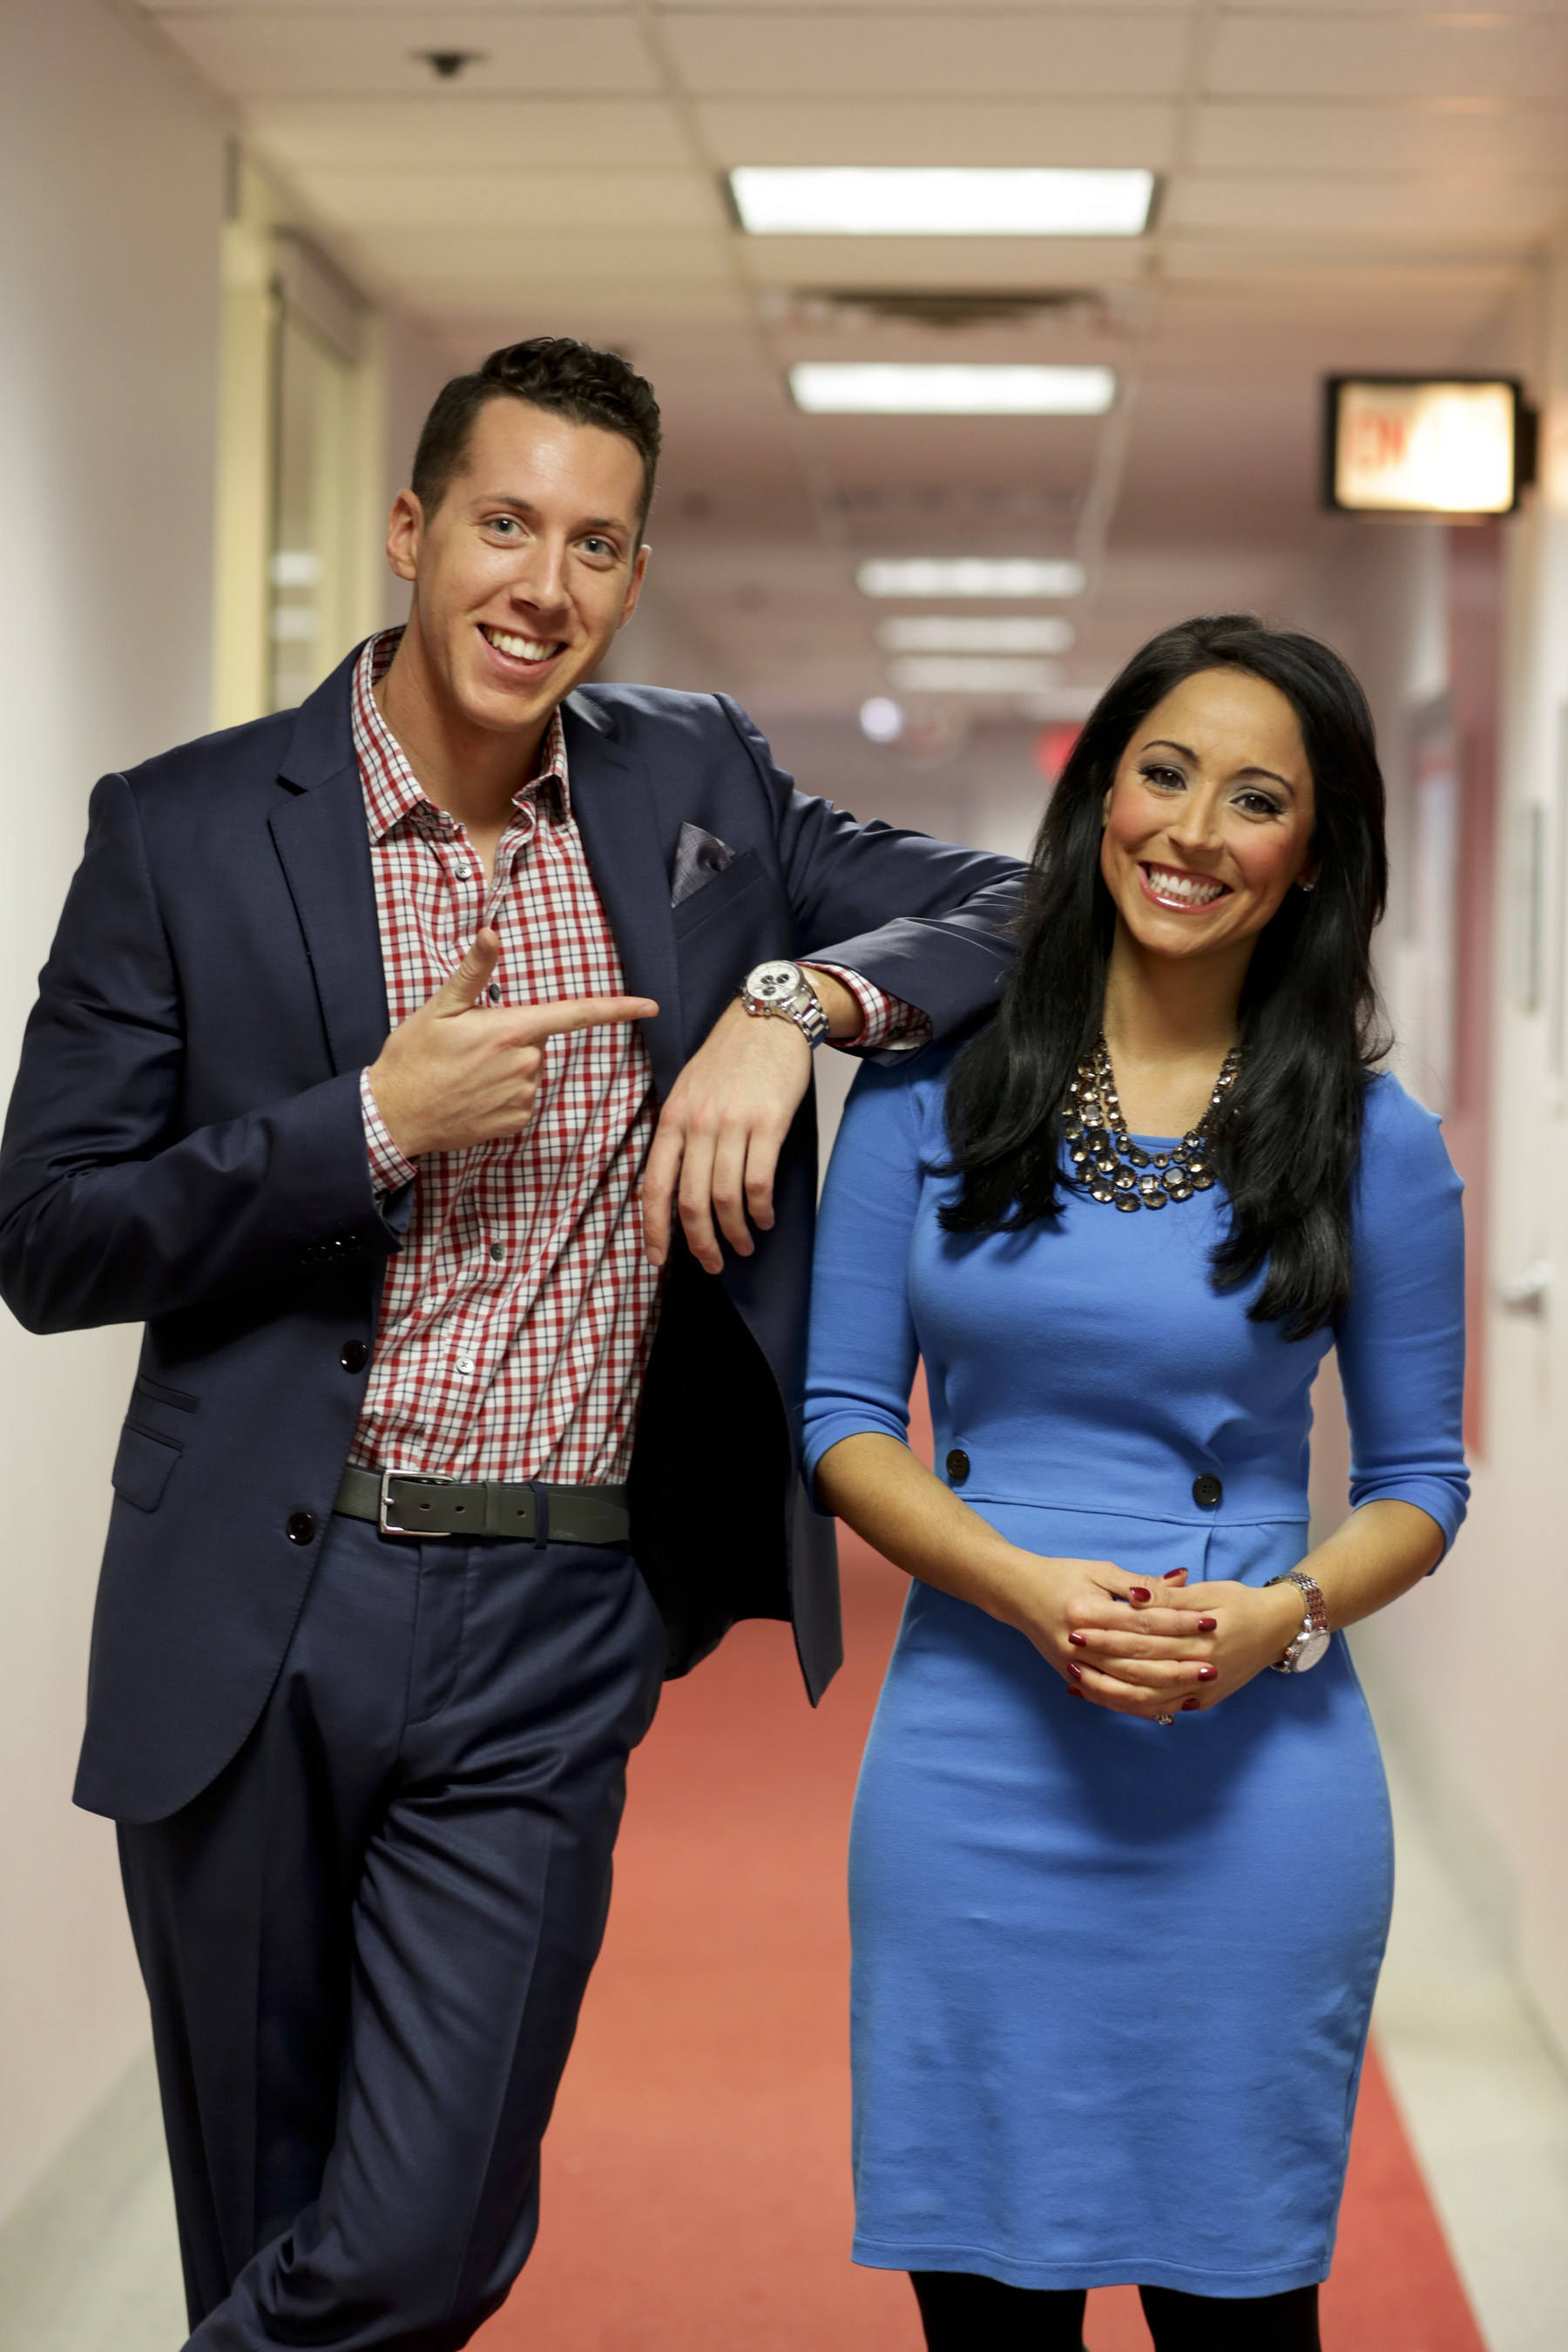 WTNH News 8's Connecticut Style Moves to 9am Starting